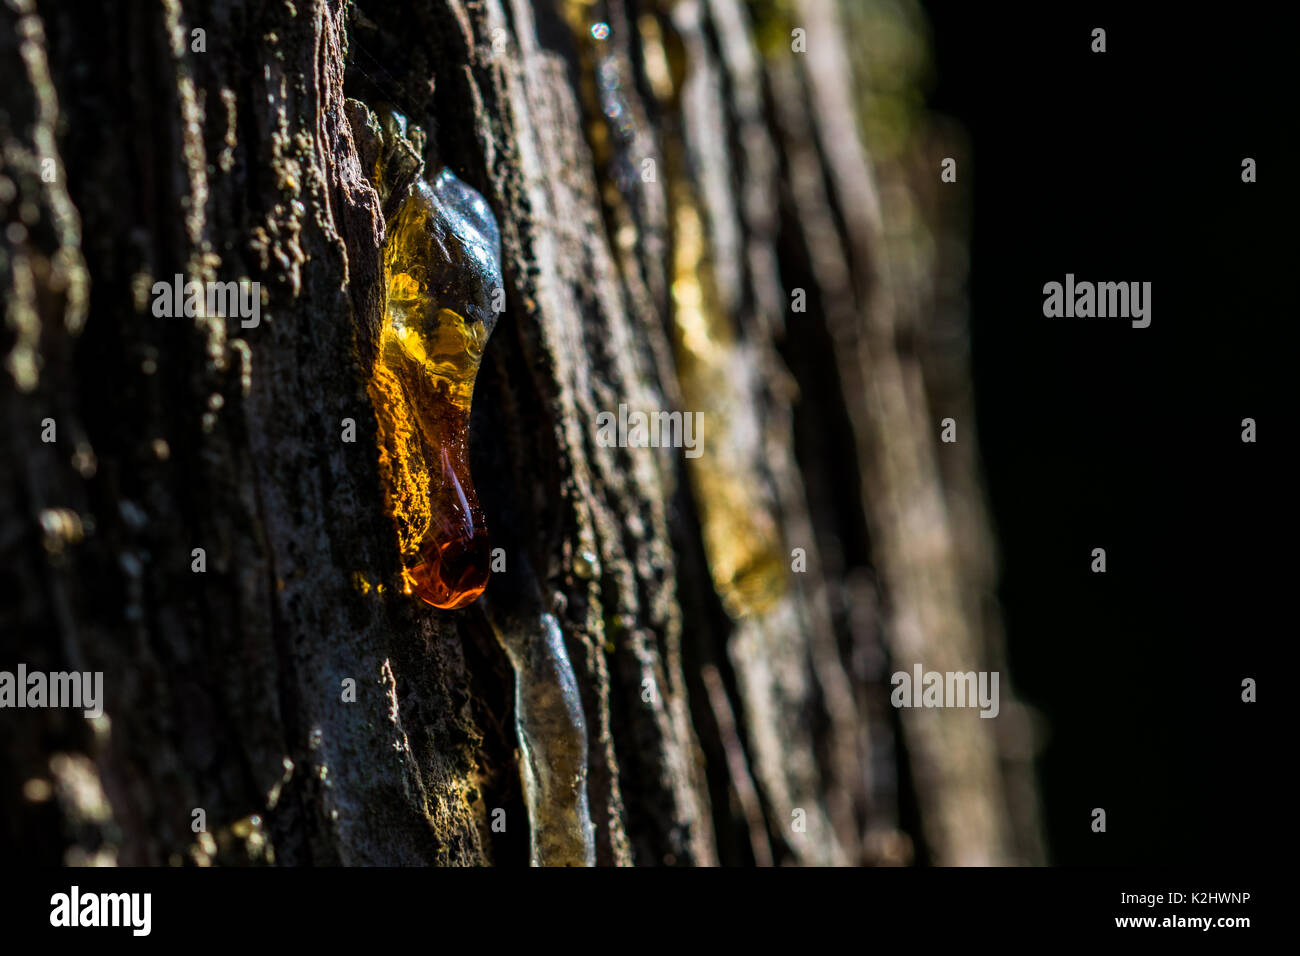 Tree sap oozing out of a trunk, with the back light lighting up the orange tree sap drop. - Stock Image